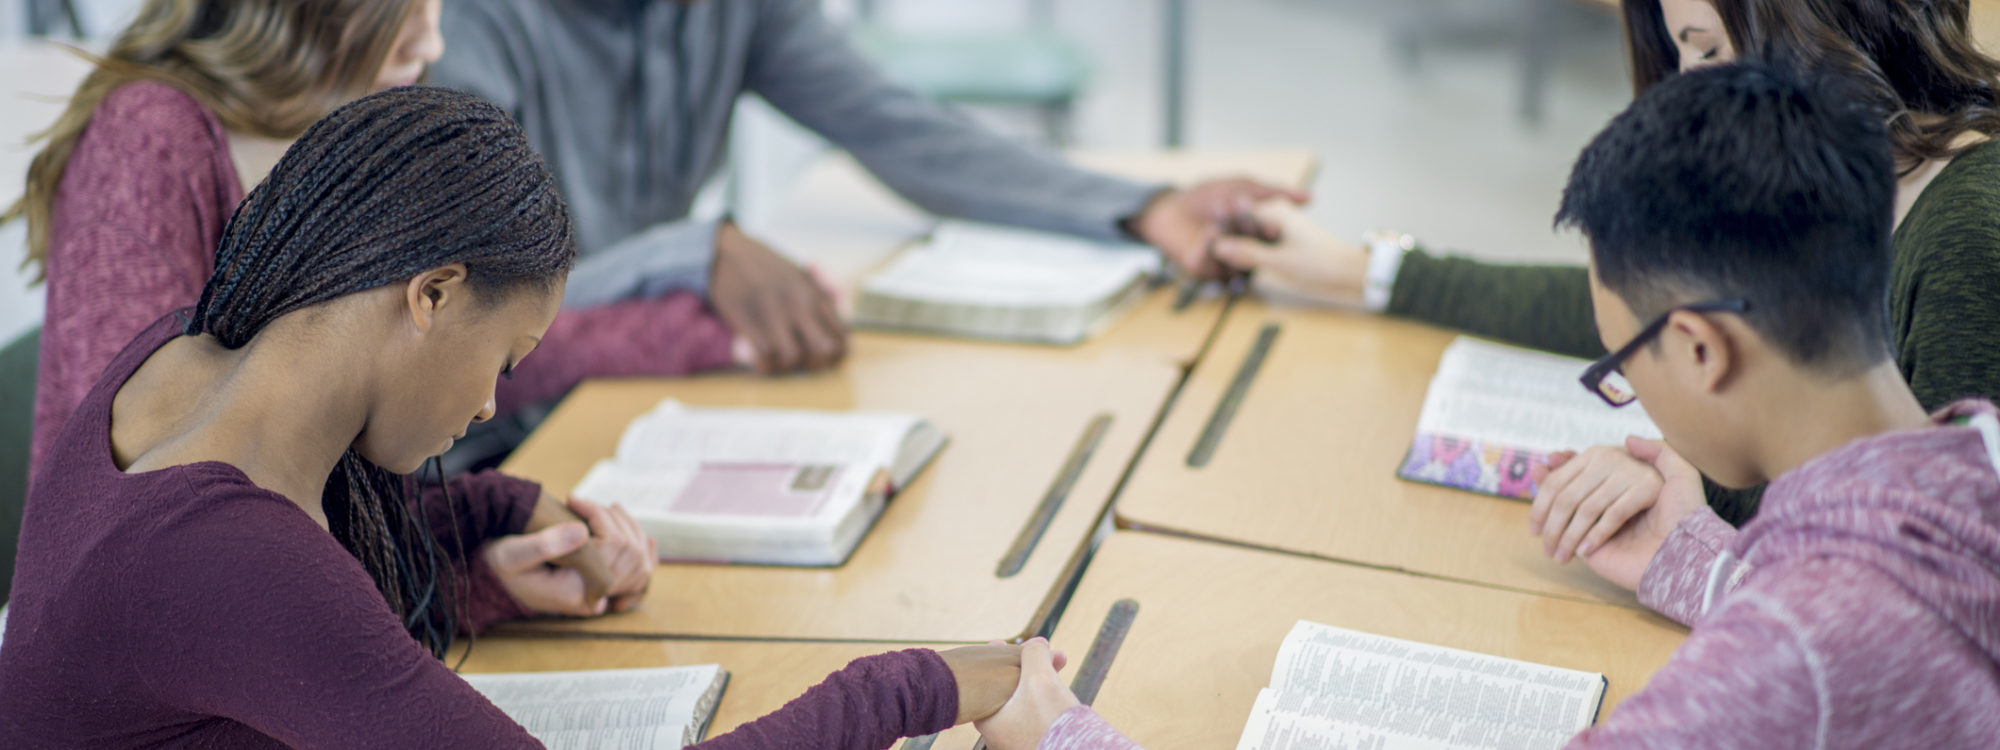 A multi-ethnic group of high school age students are sitting together at their desks and are holding hands while praying together.